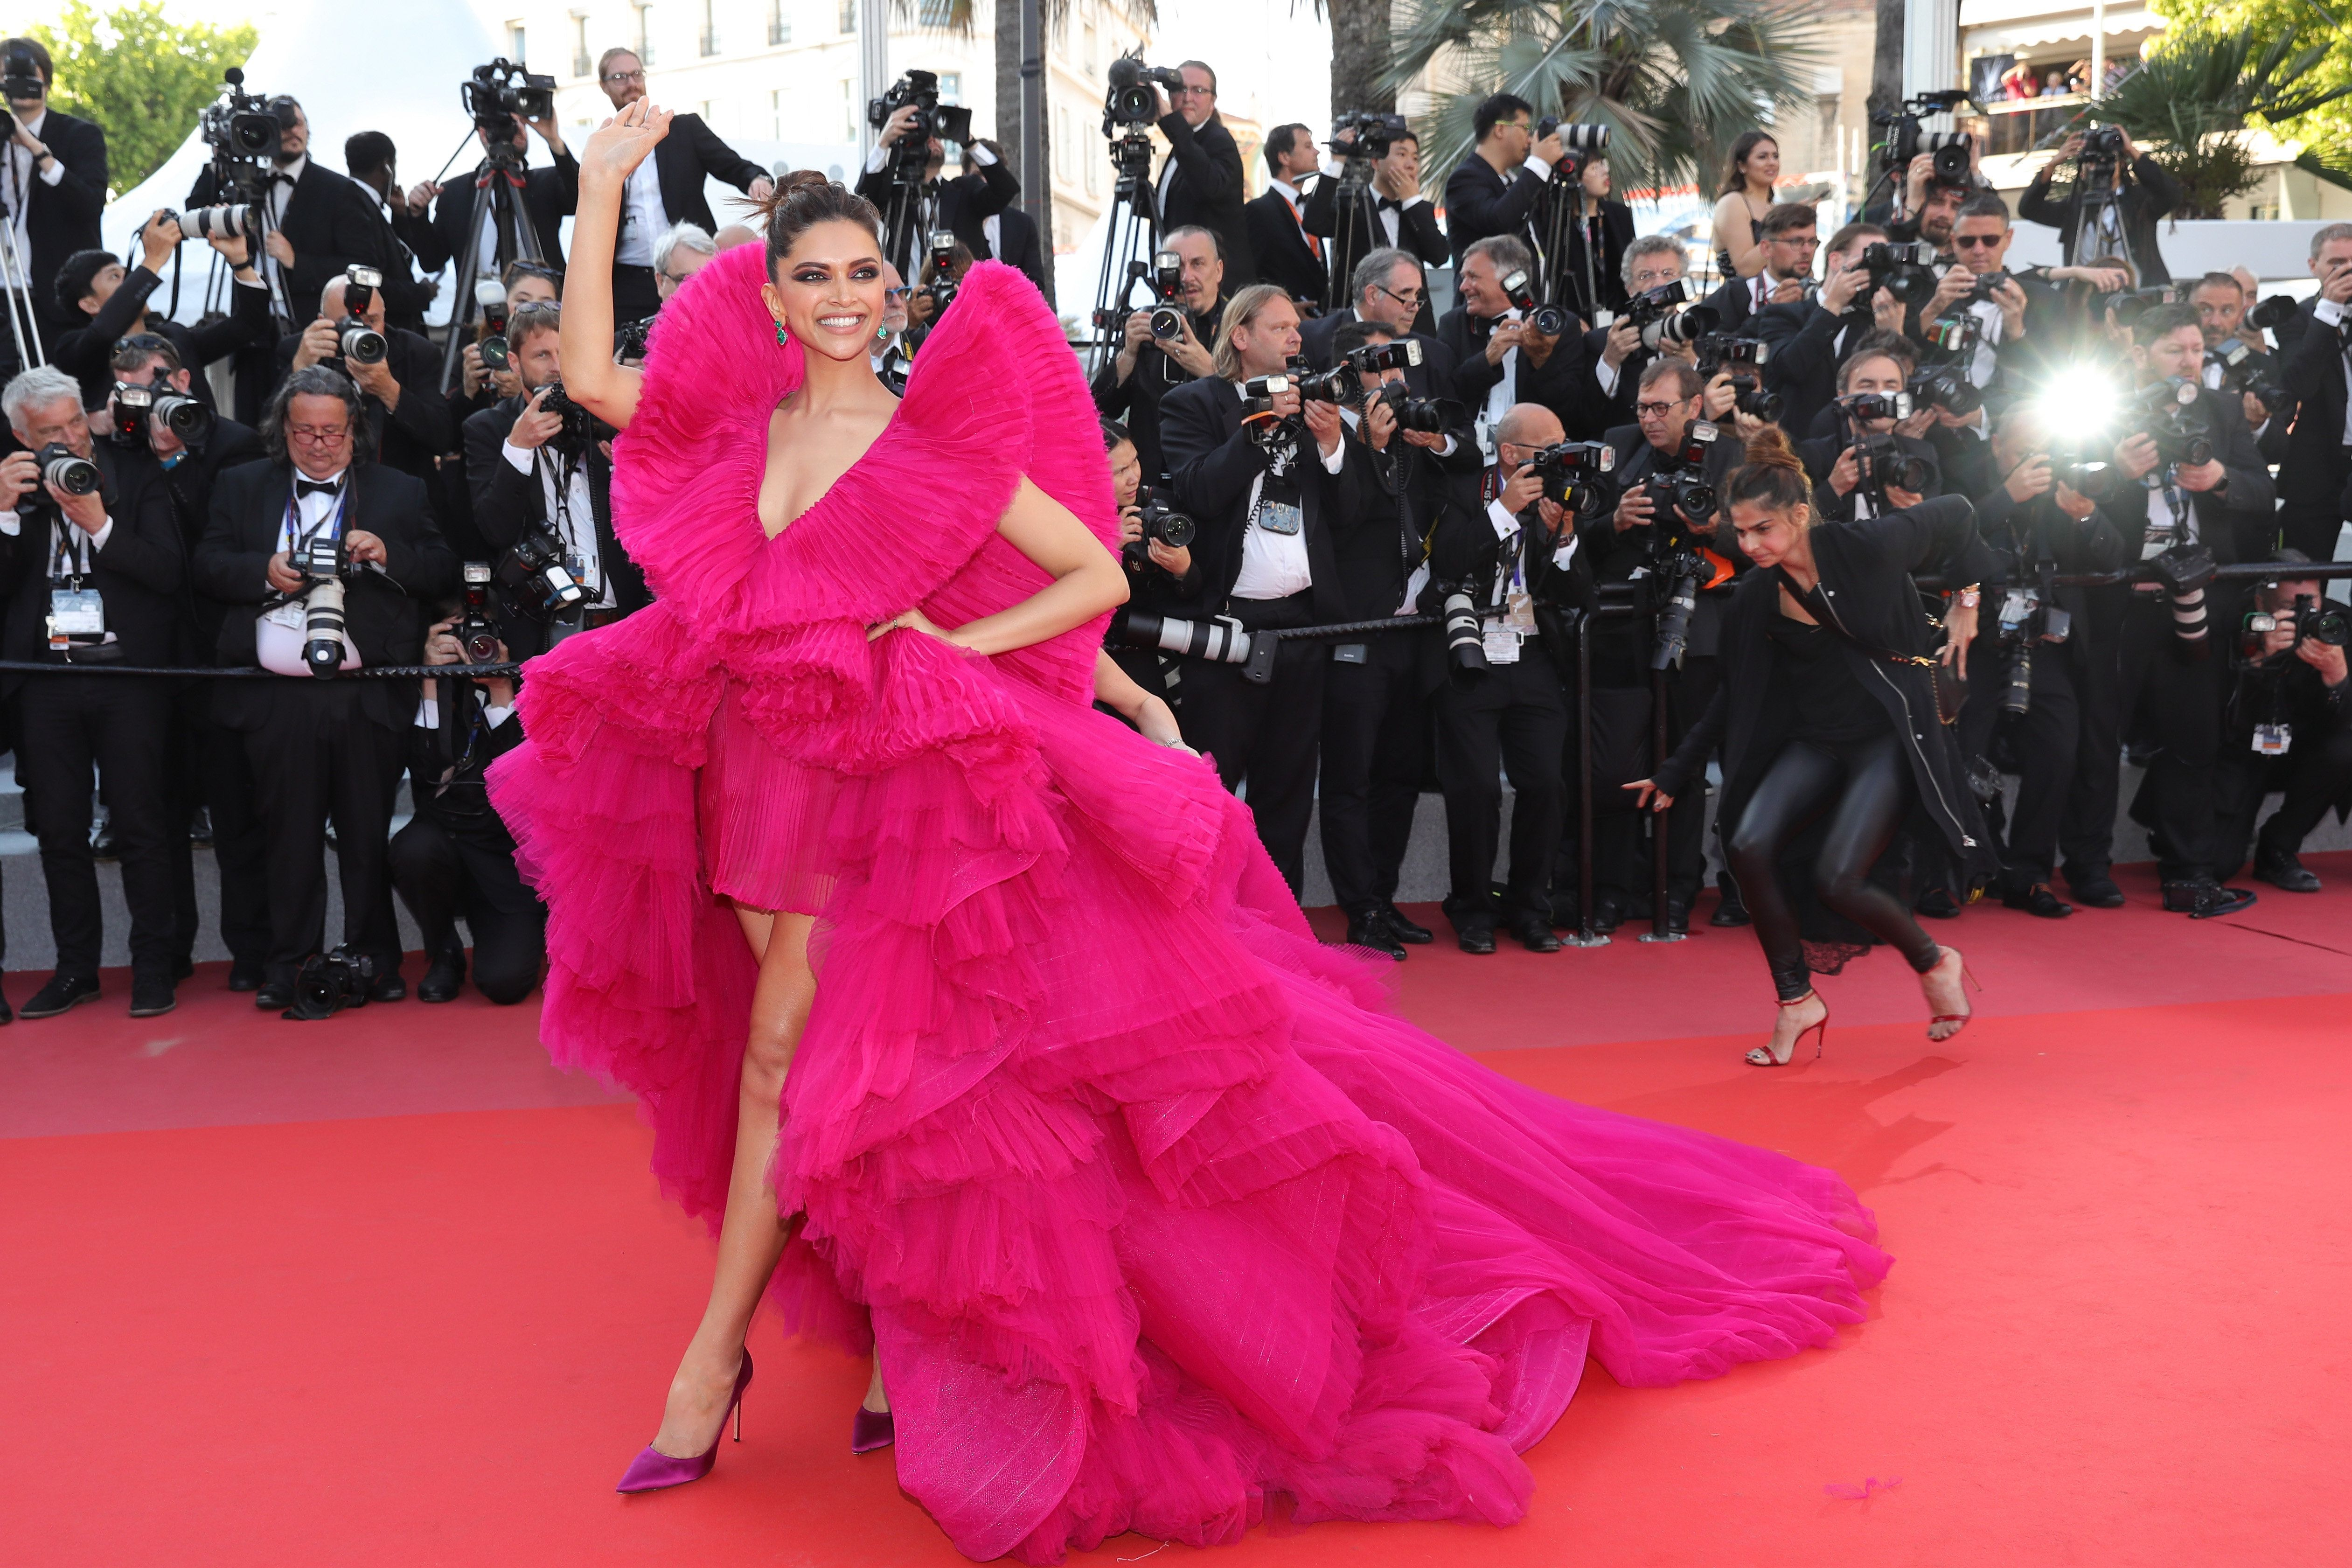 The Most Stunning Looks From The 2018 Cannes Film Festival Red